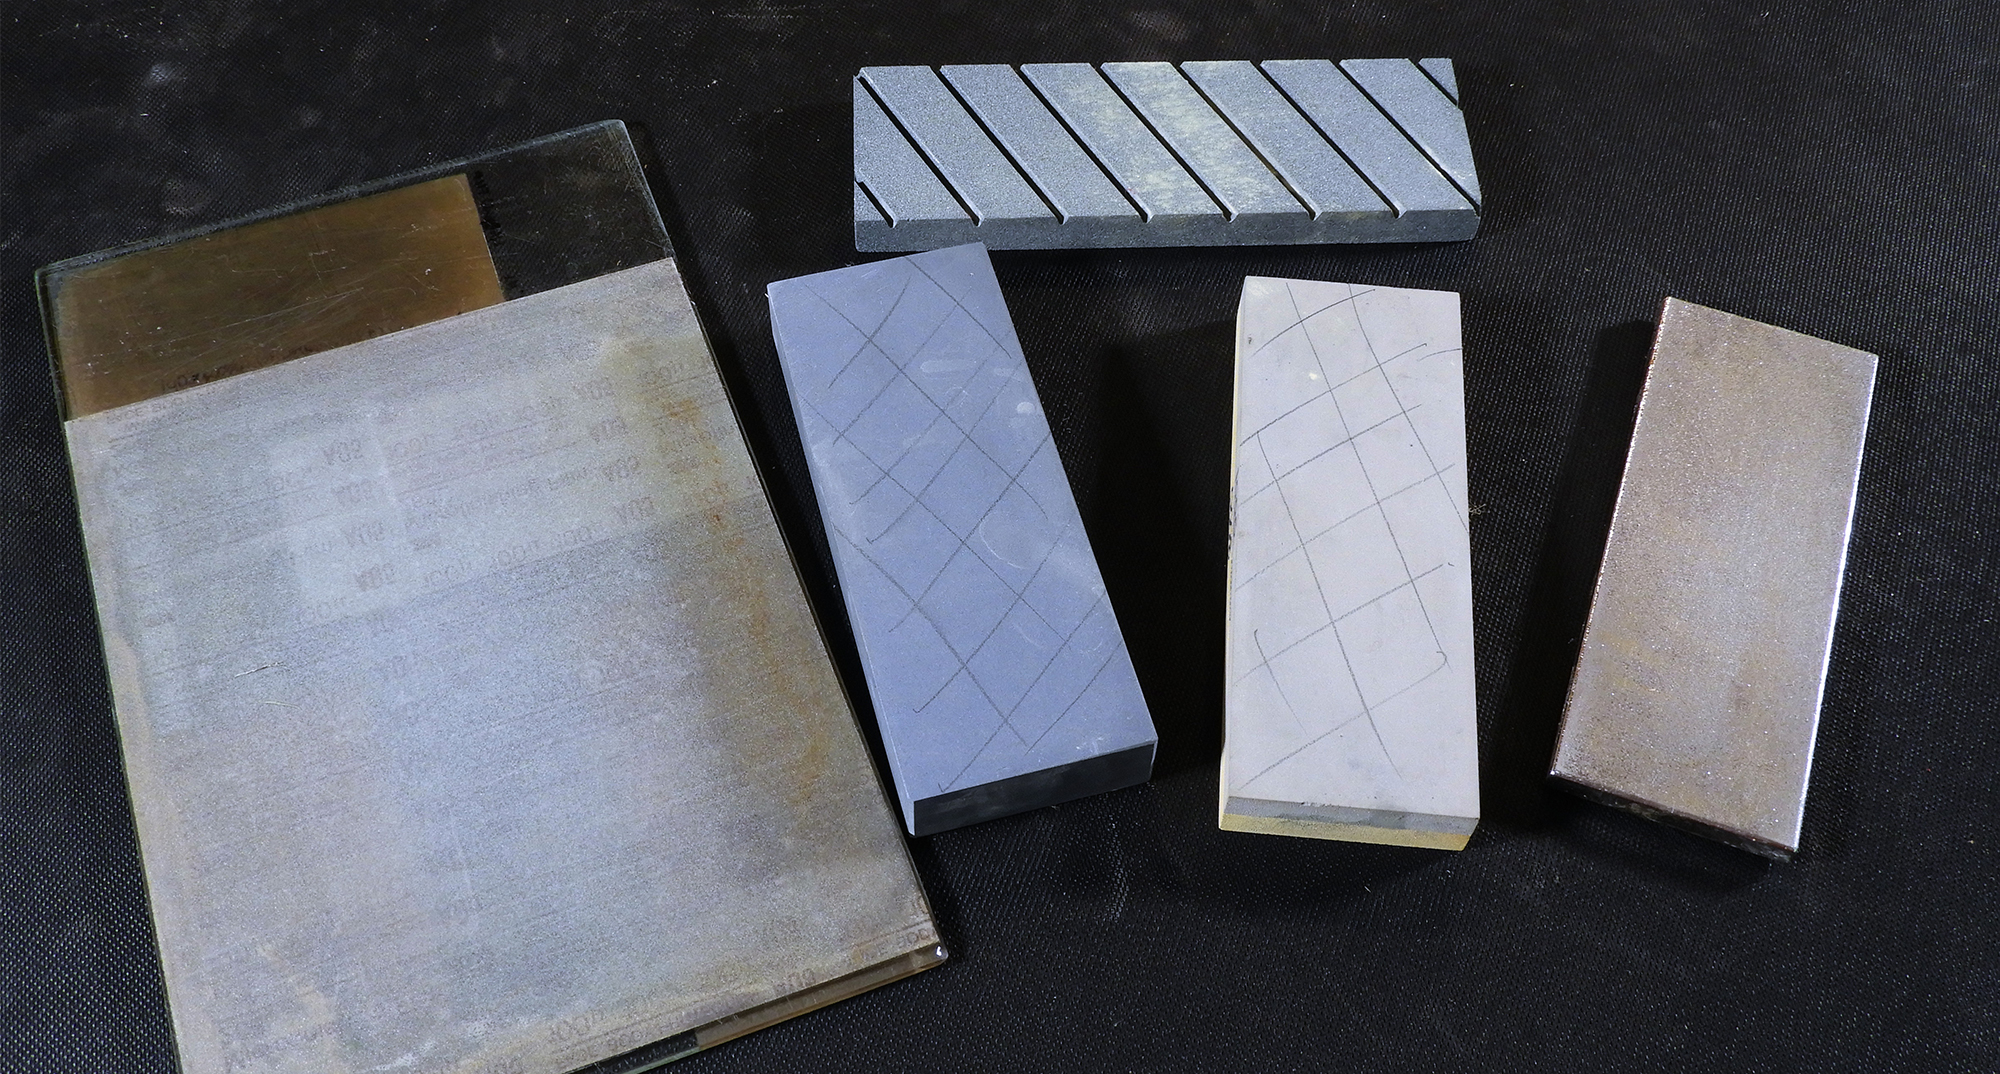 Selection of flattening media – Abrasive on glass (left), Truing stone (top) and diamond stone (right)